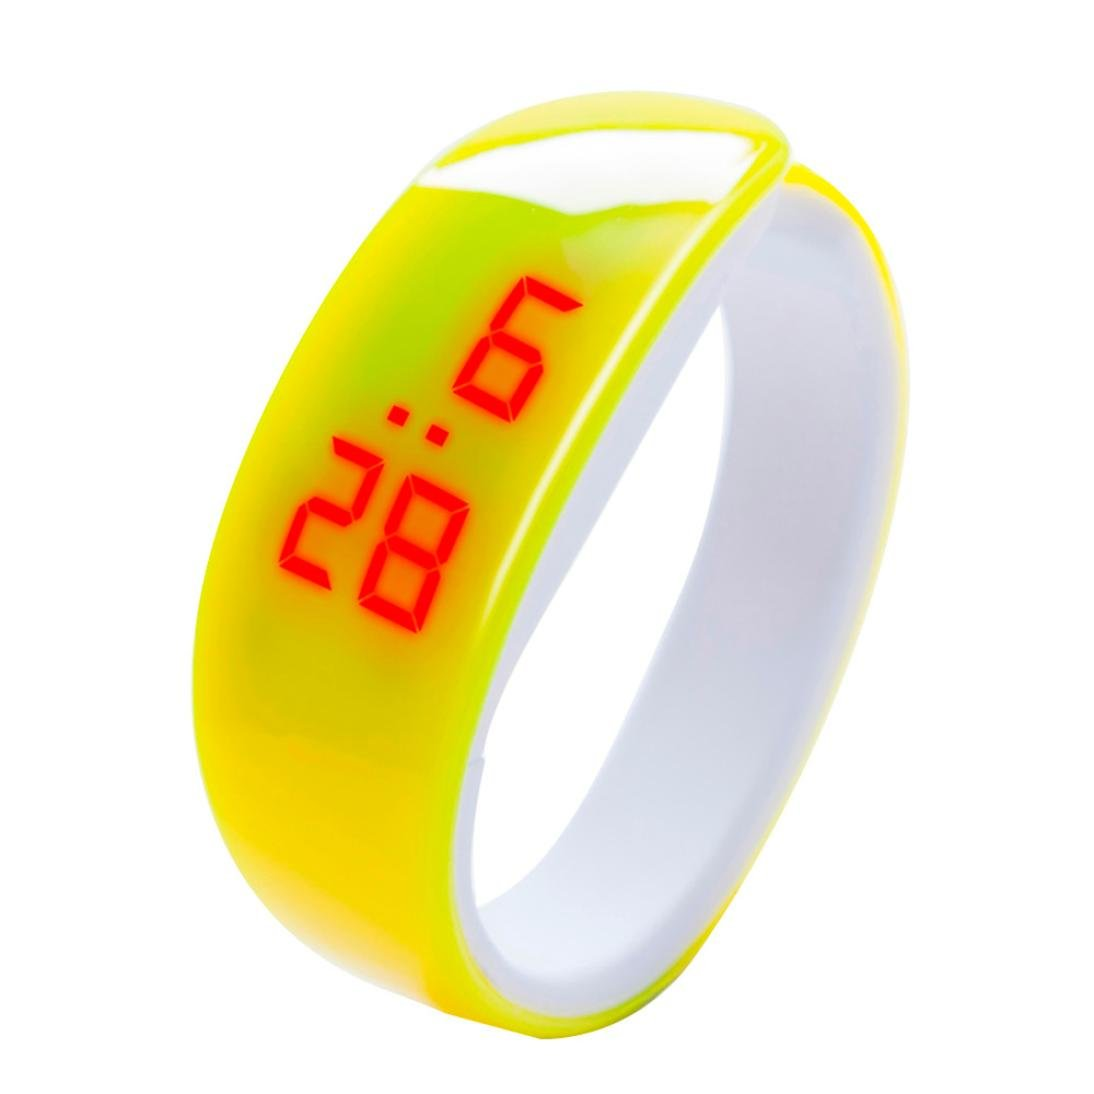 LED Fitness Bracelet Watches for Women and Men, Iuhan Fashion LED Digital Display Bracelet Watch Dolphin Young Fashion Sports Bracelet (Yellow) by Iuhan  (Image #1)